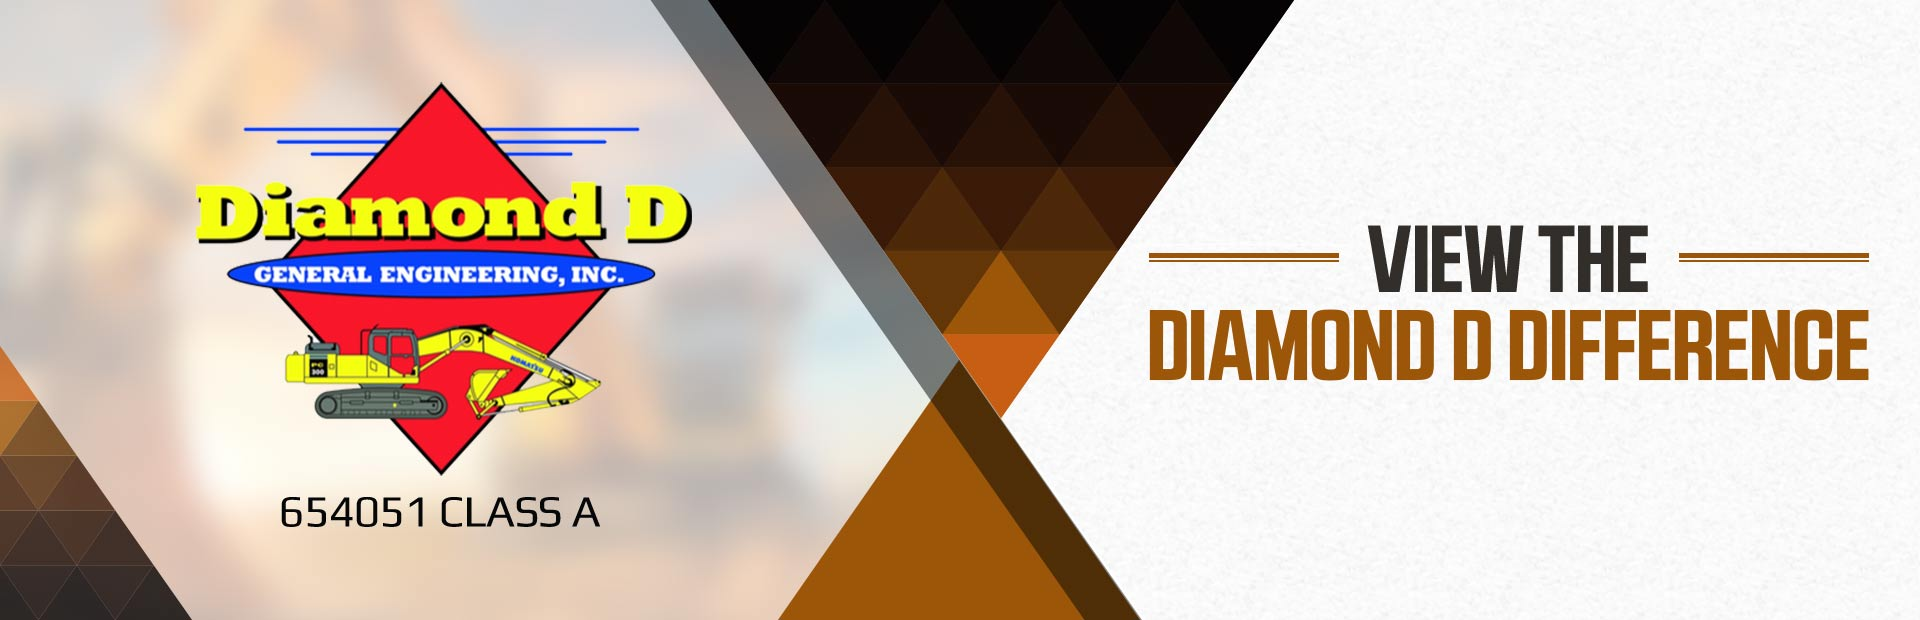 The Diamond D Difference: Click here for details.